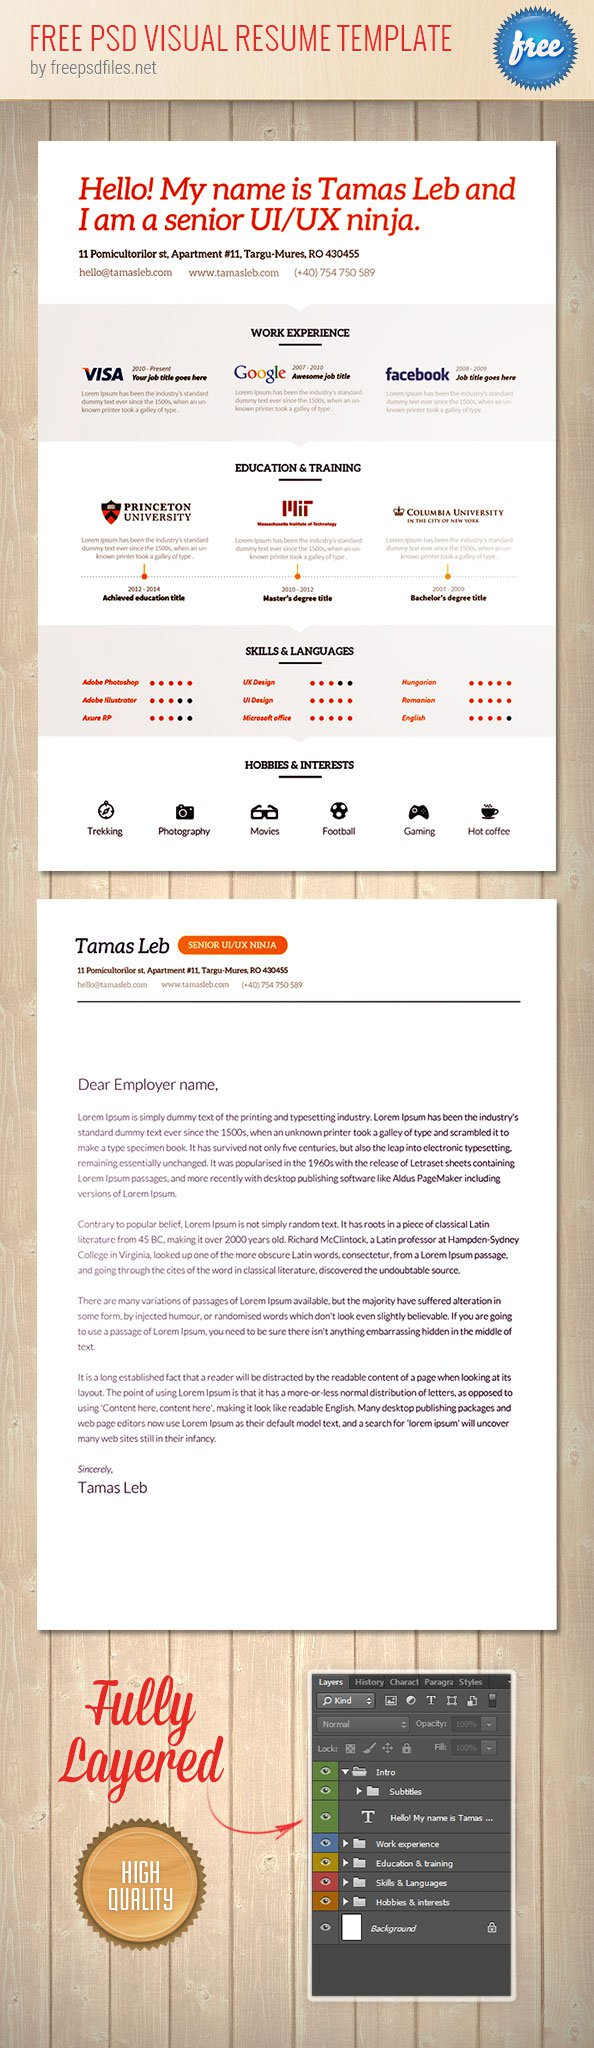 34 free psd cv  resumes to find a good job